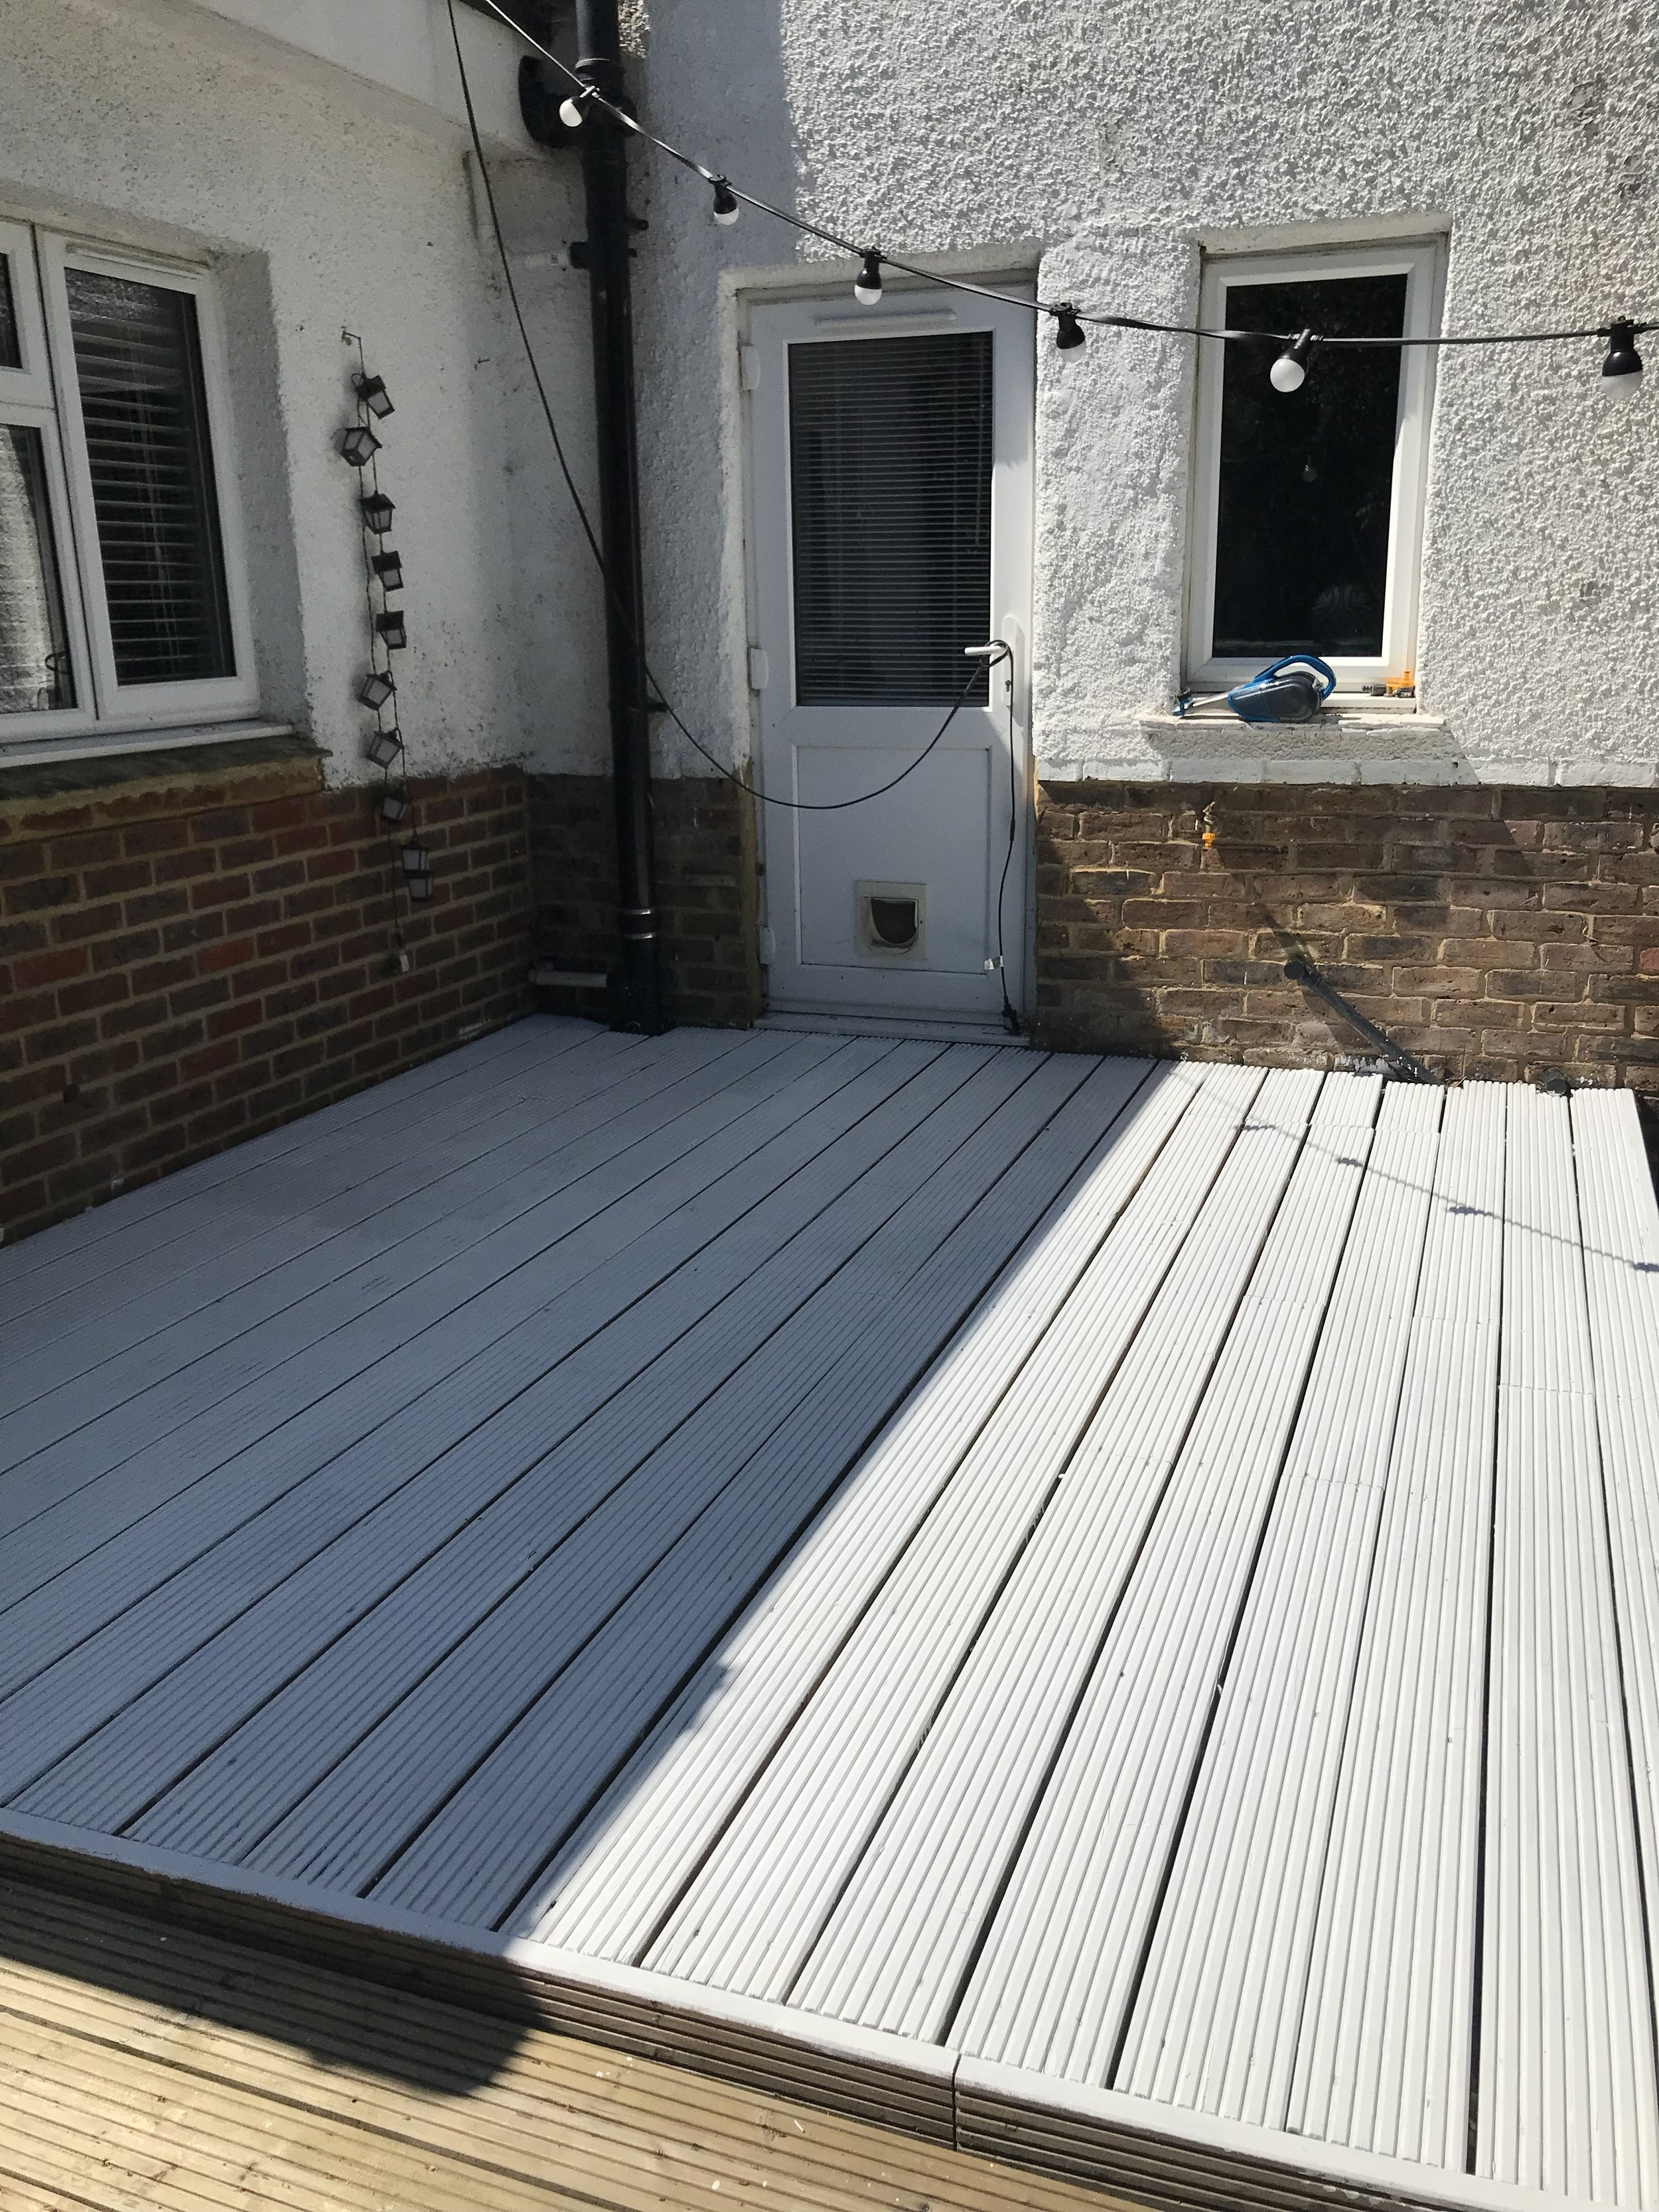 The main part of the decking waiting to dry